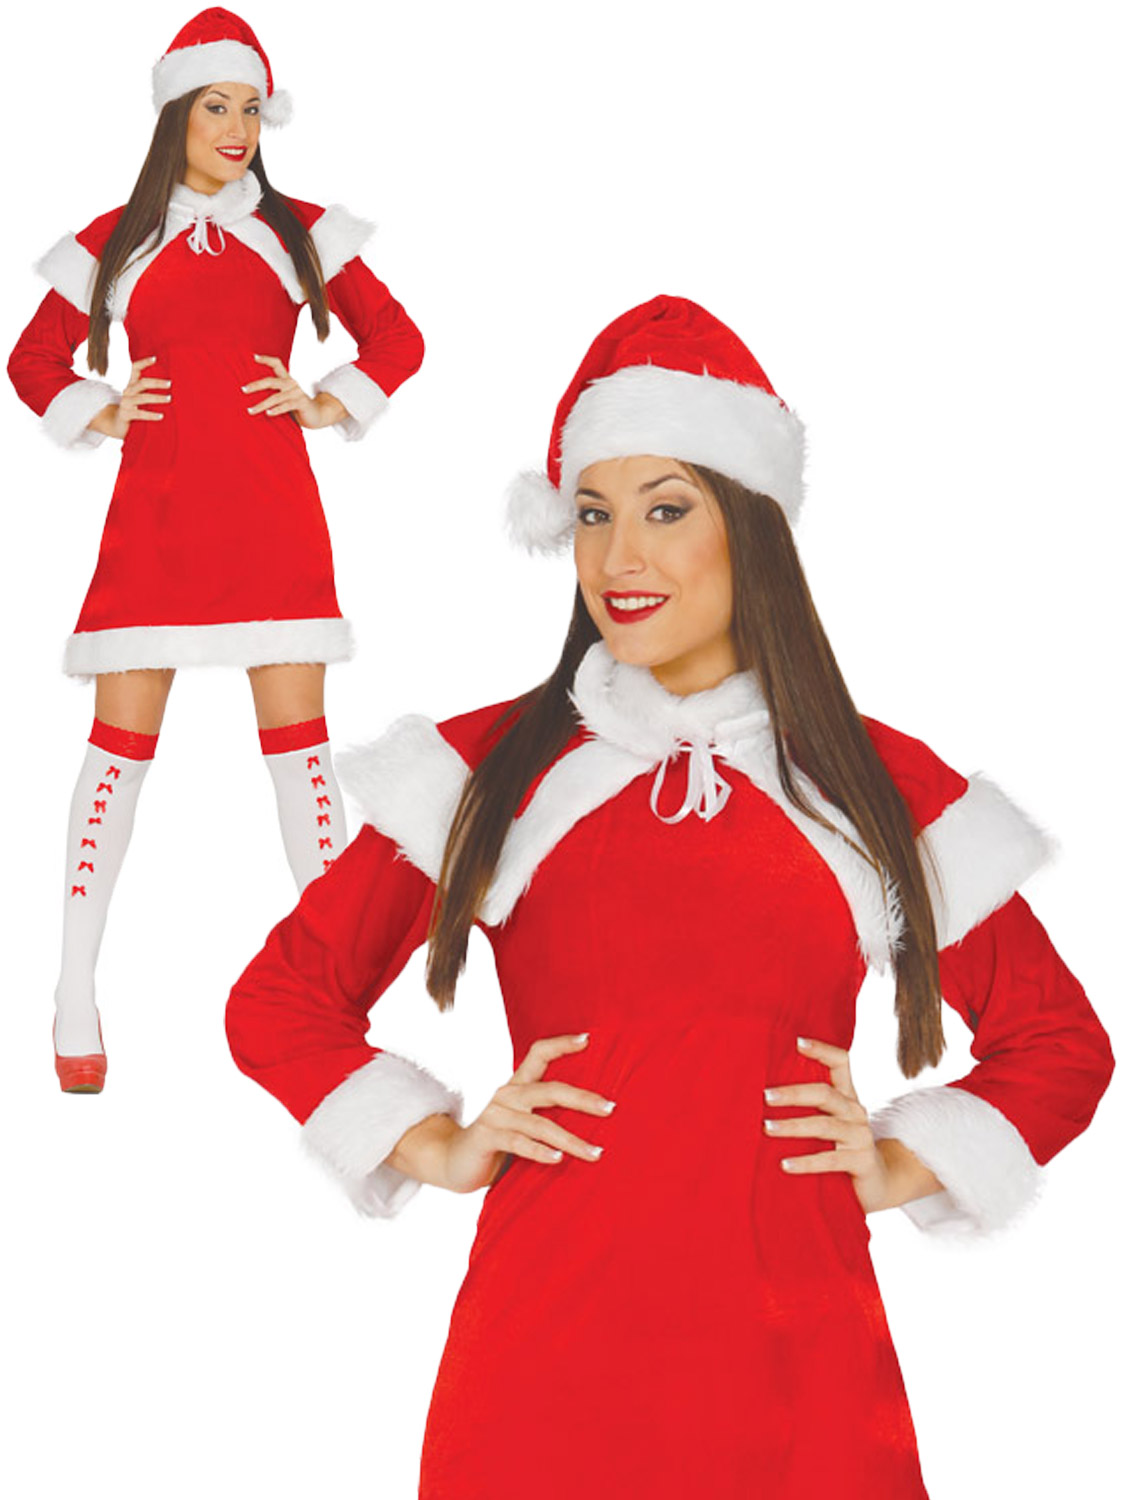 Ladies mrs santa claus costume adults christmas fancy dress womens transform yourself into mrs claus with this ladies santa costume ideal if you are dressing up for christmas solutioingenieria